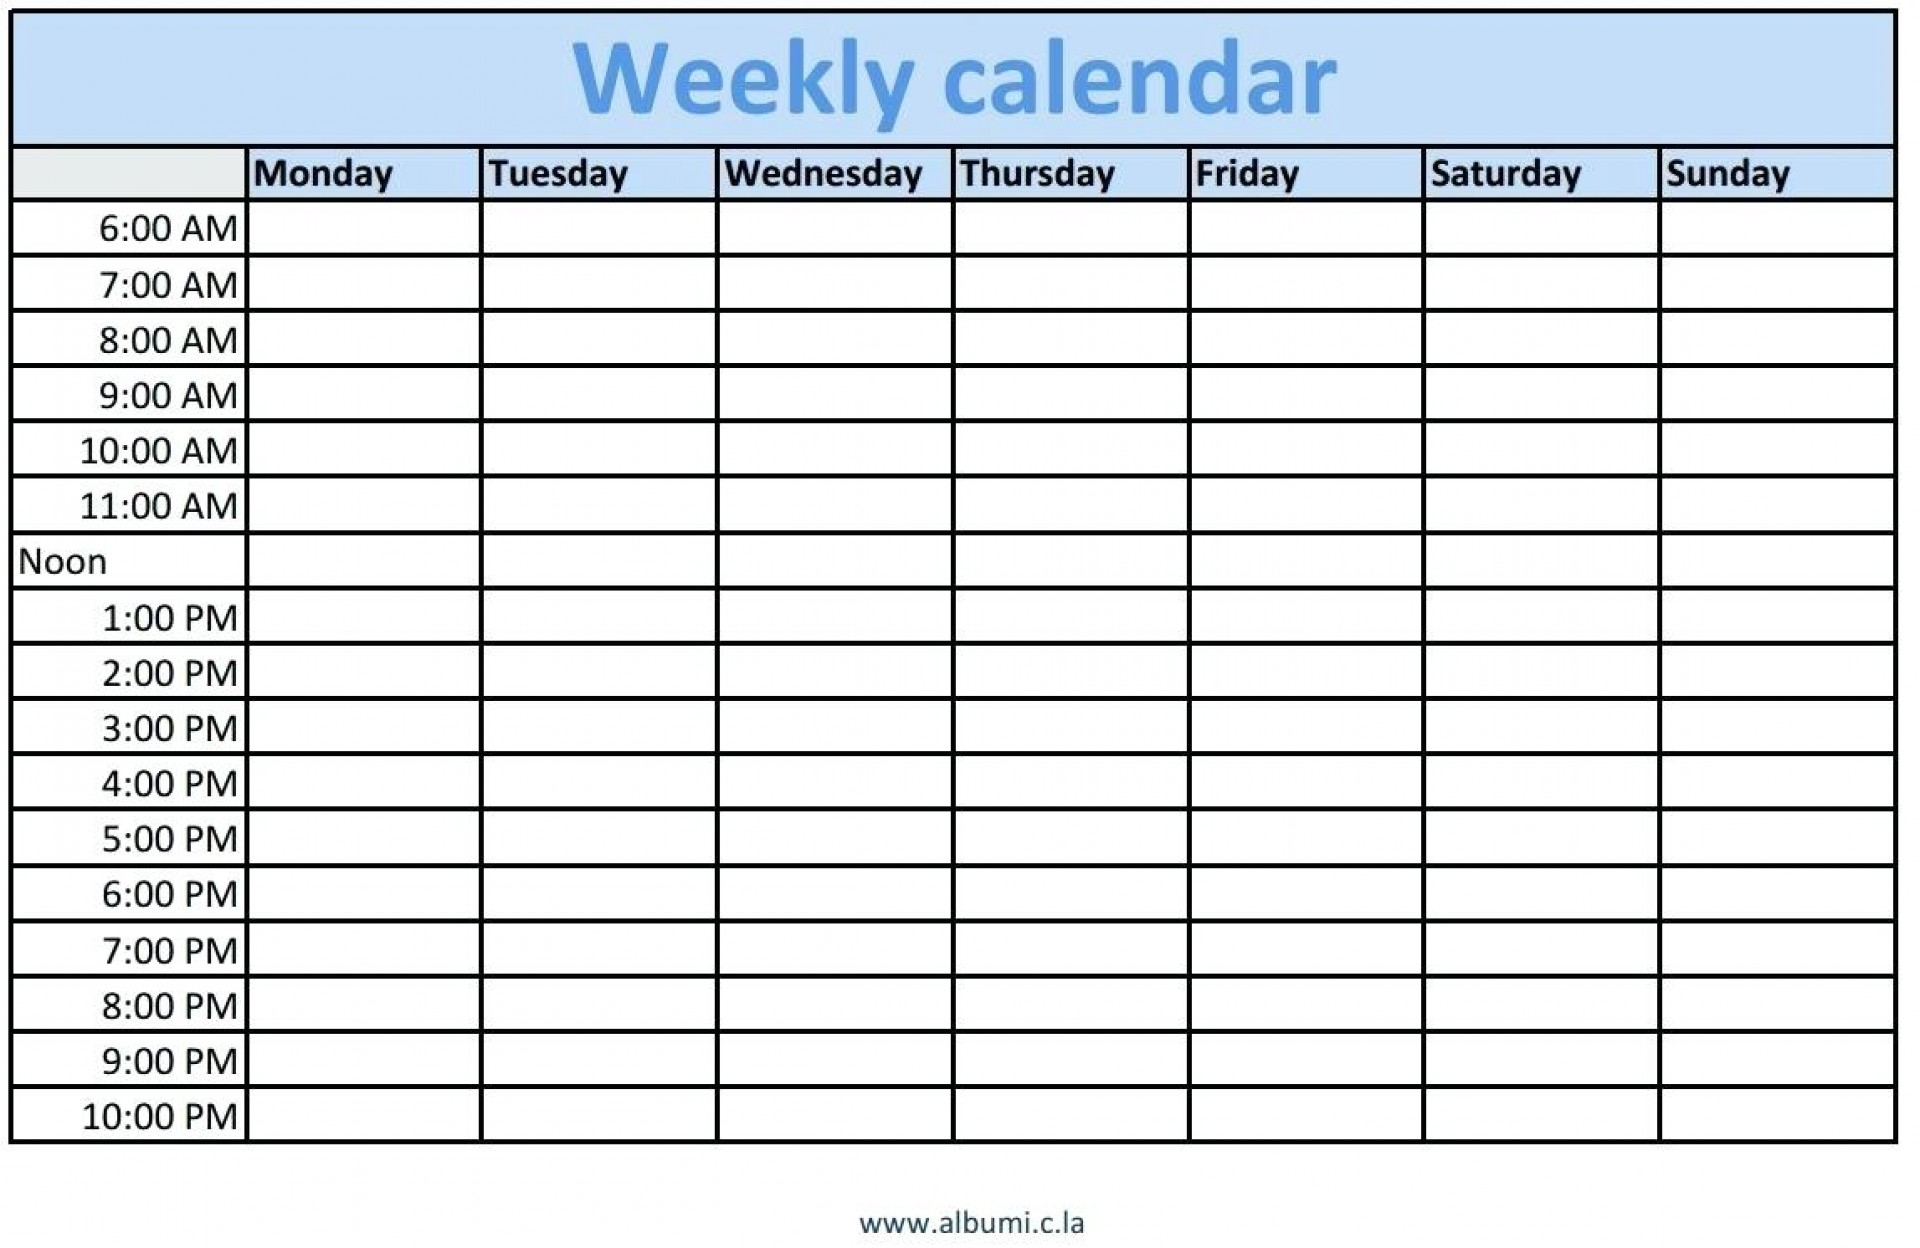 Blank Daily Schedule With Time Slots | Calendar Printing Example with Blank Daily Schedule With Time Slots